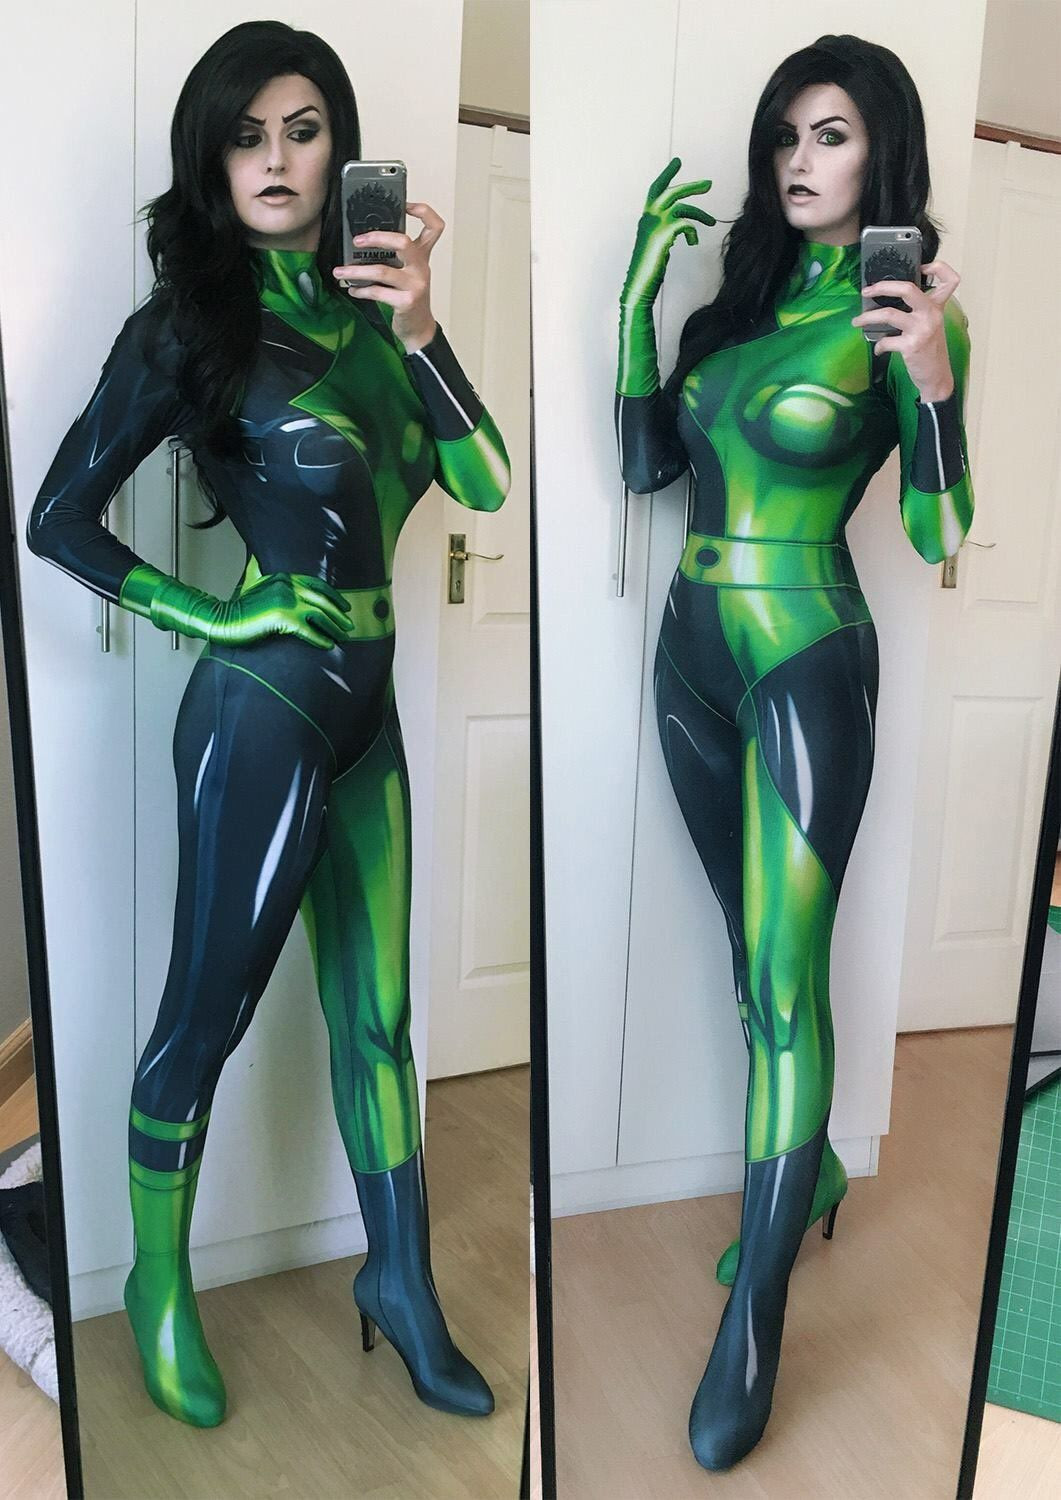 Best ideas about Shego Costume DIY . Save or Pin AMAZING SHEGO COSTUME DIY FROM KIM POSSIBLE Now.